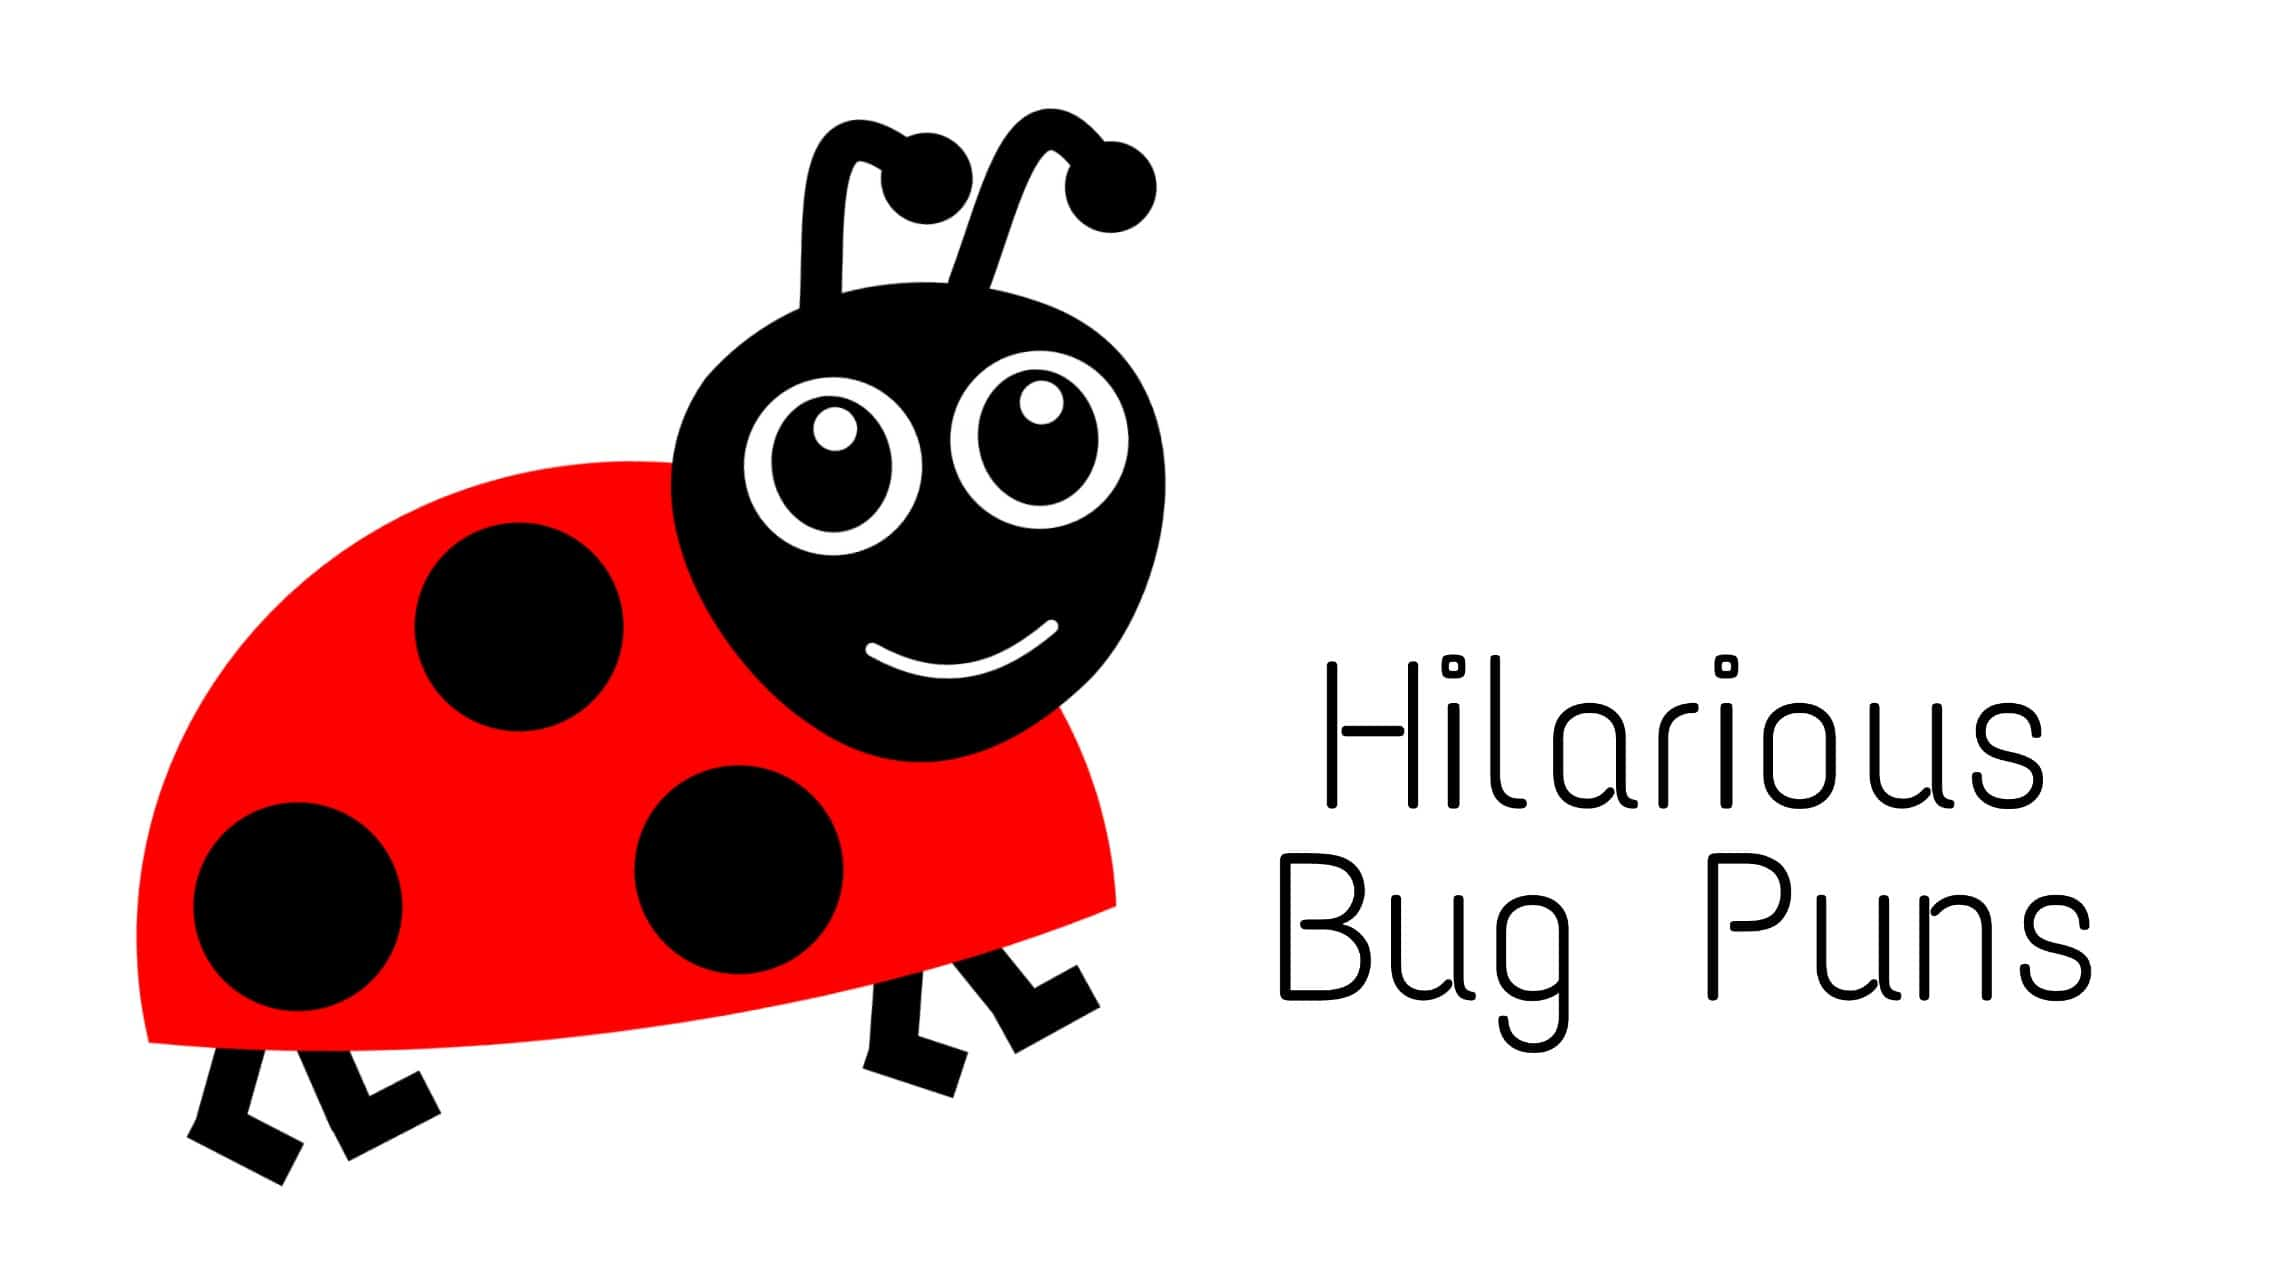 These 70 Bug Puns Are Plucking Hilarious